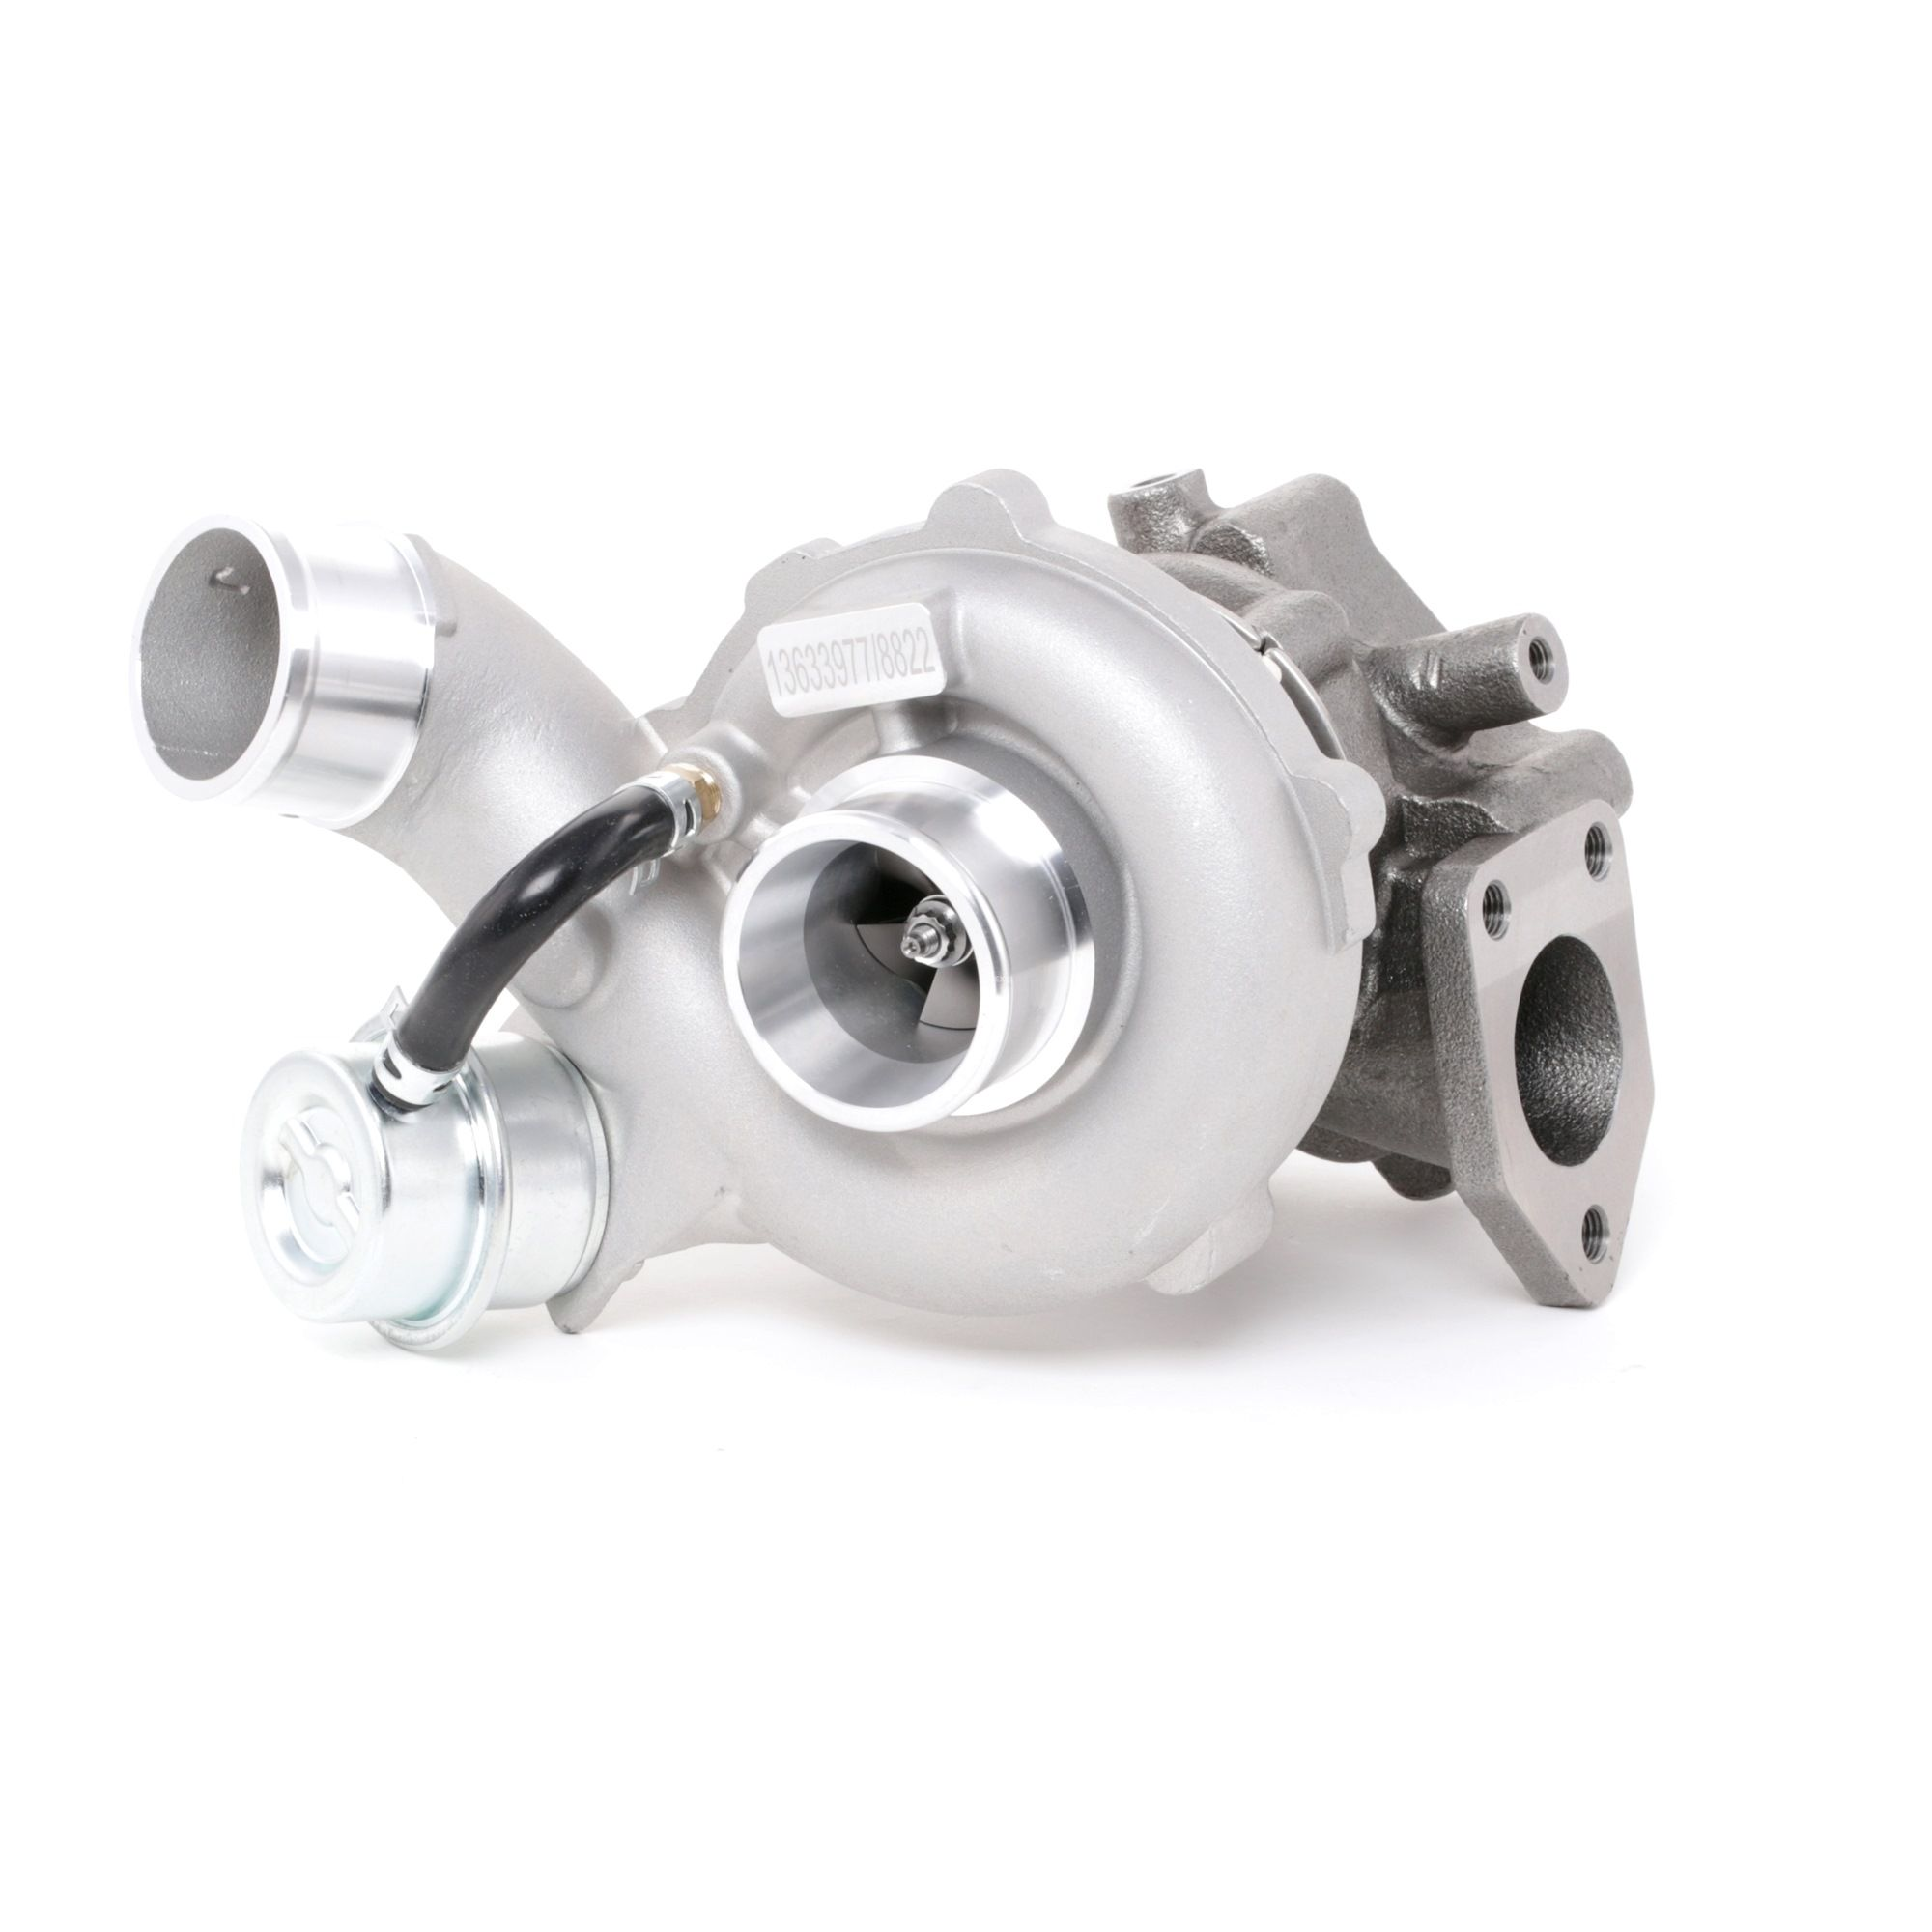 RIDEX Turbocharger KIA 2234C0004 282004A101 Turbolader,Charger, charging system